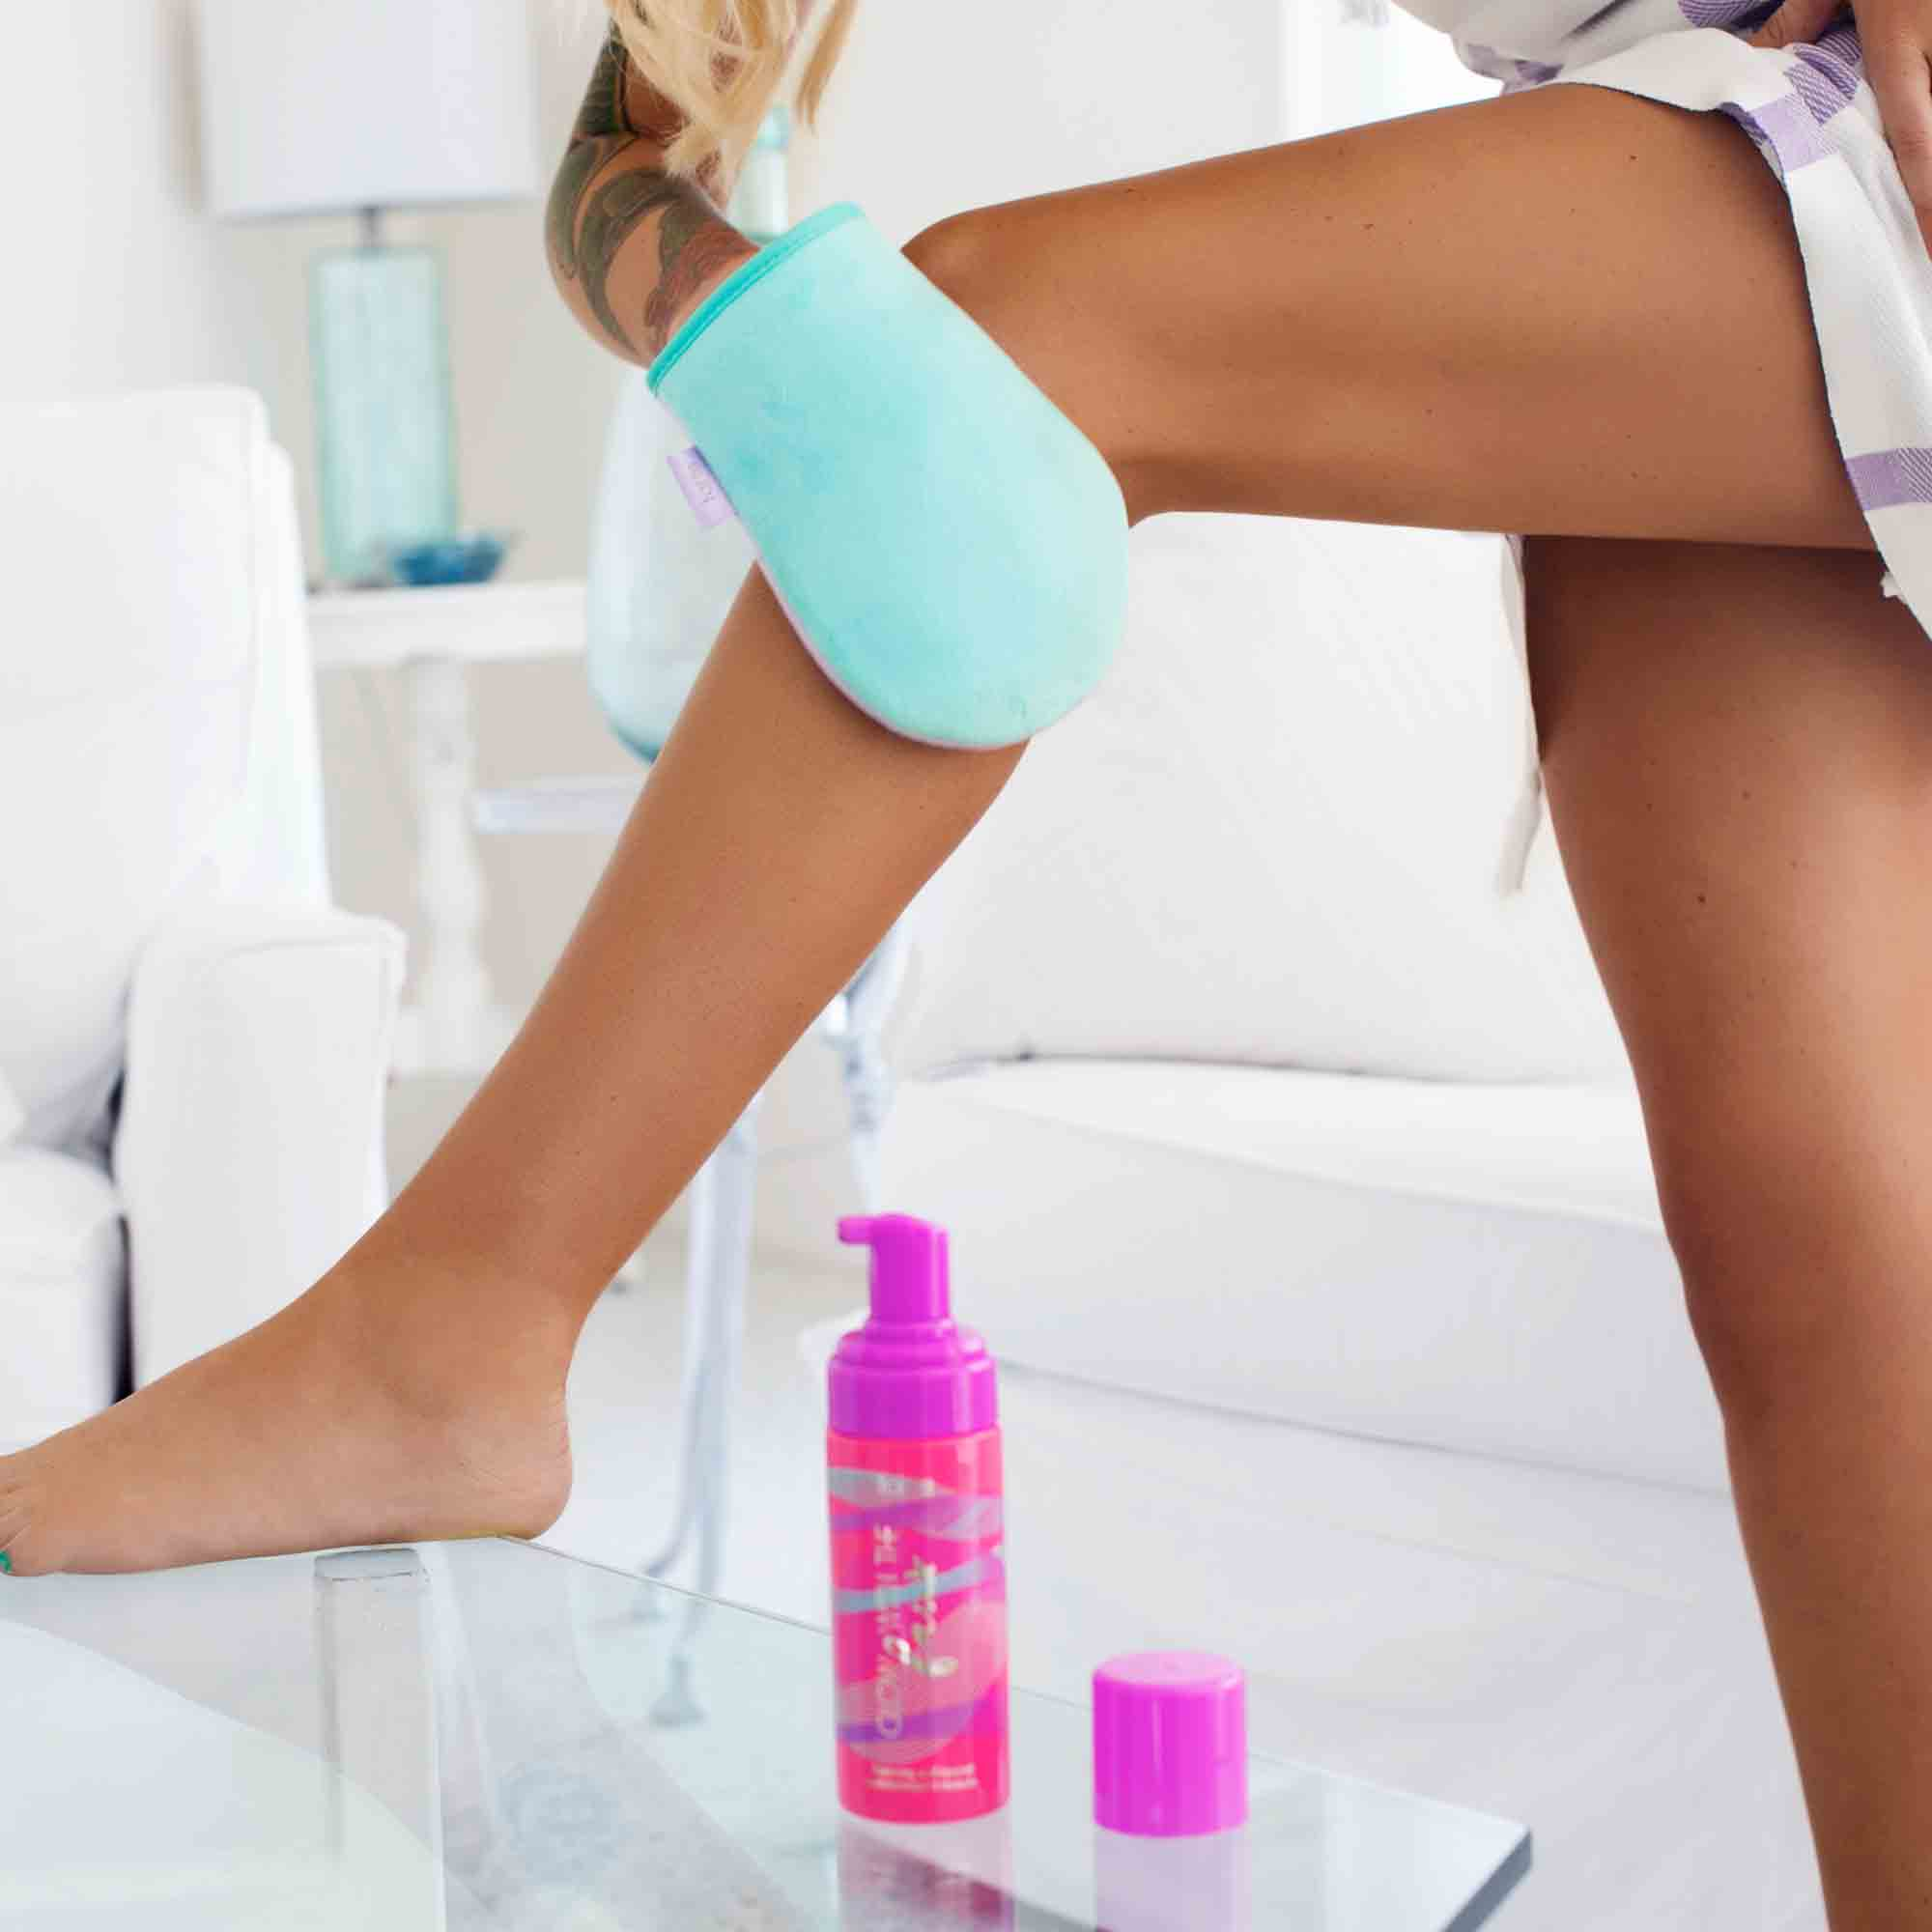 Limited Edition Travel Size Glow With The Faux Foaming Self Tanner